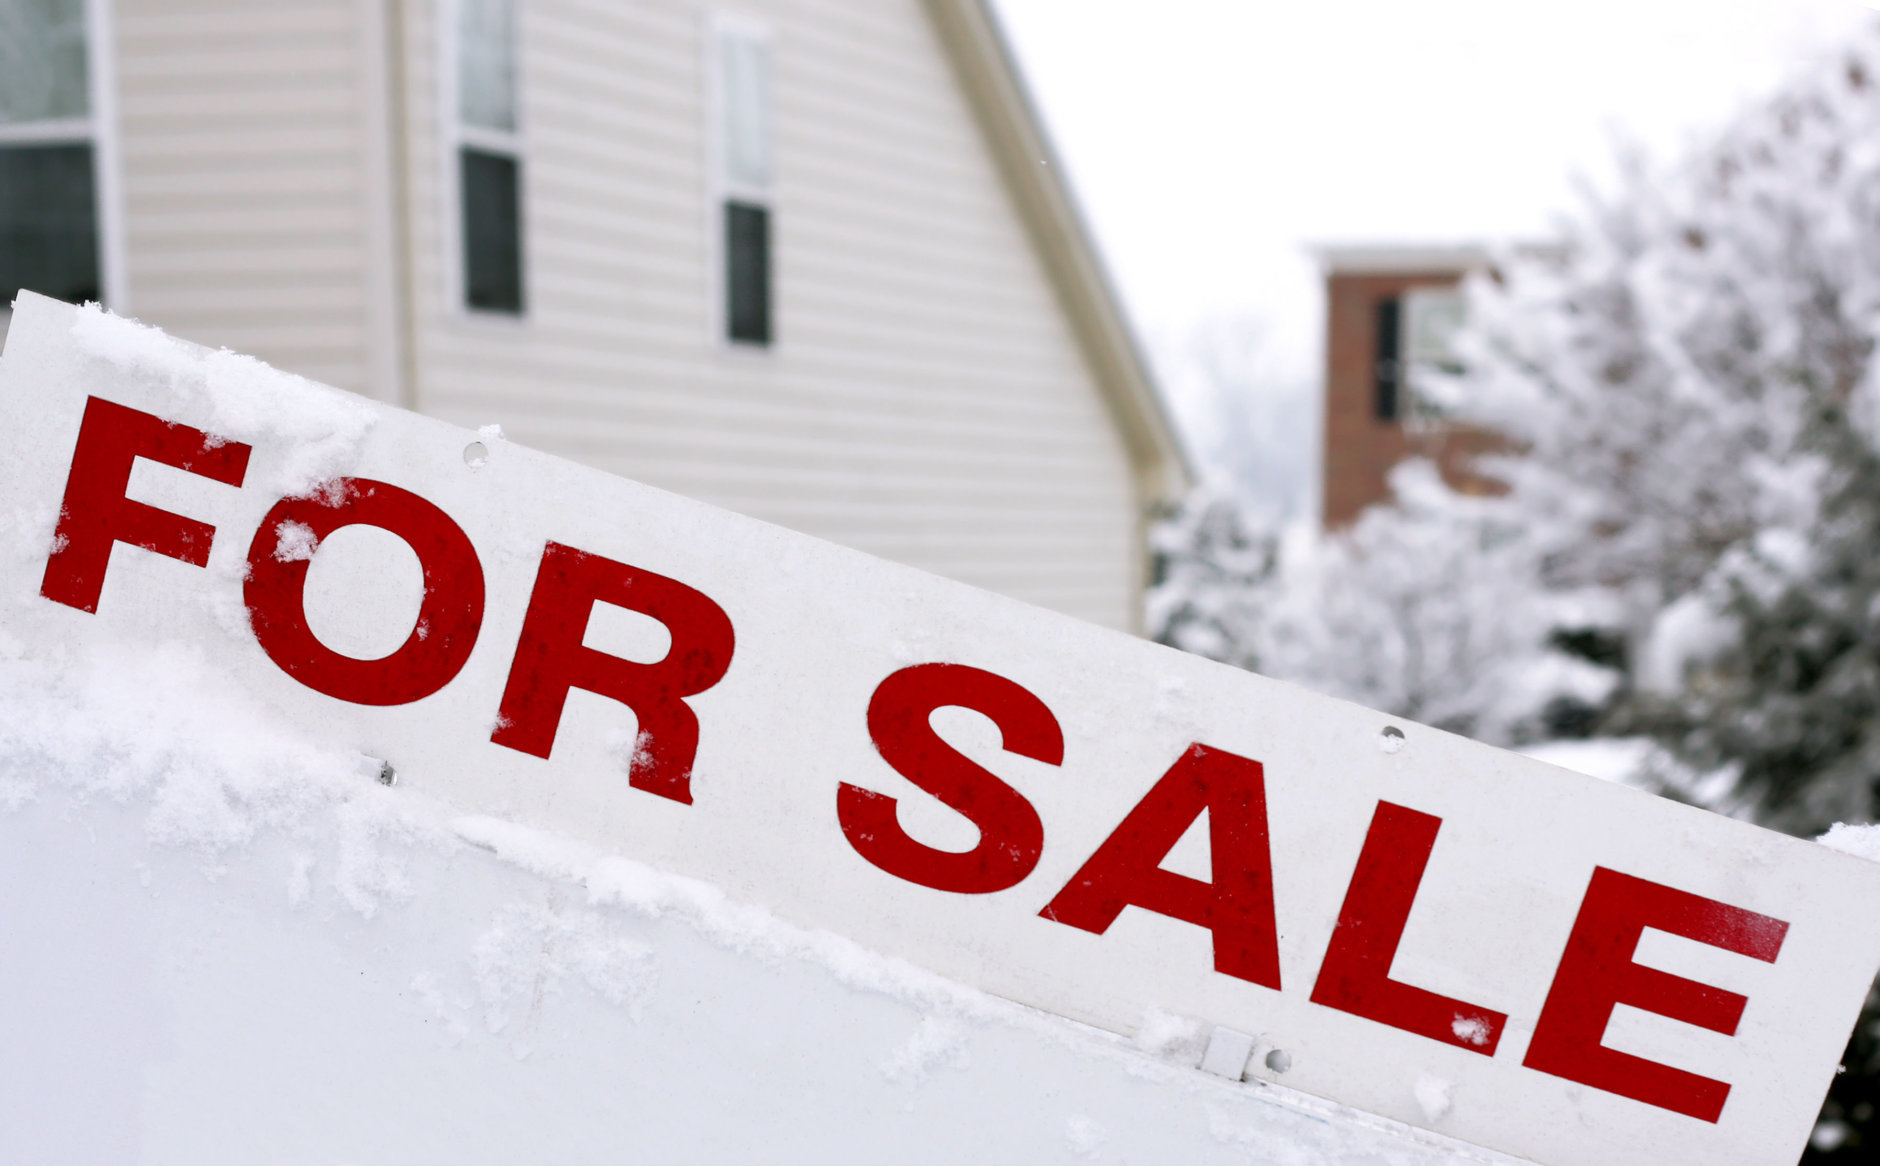 The housing market is hottest during the warmer months, but that doesn't mean the real estate world grinds to a halt each winter. (Getty Images)